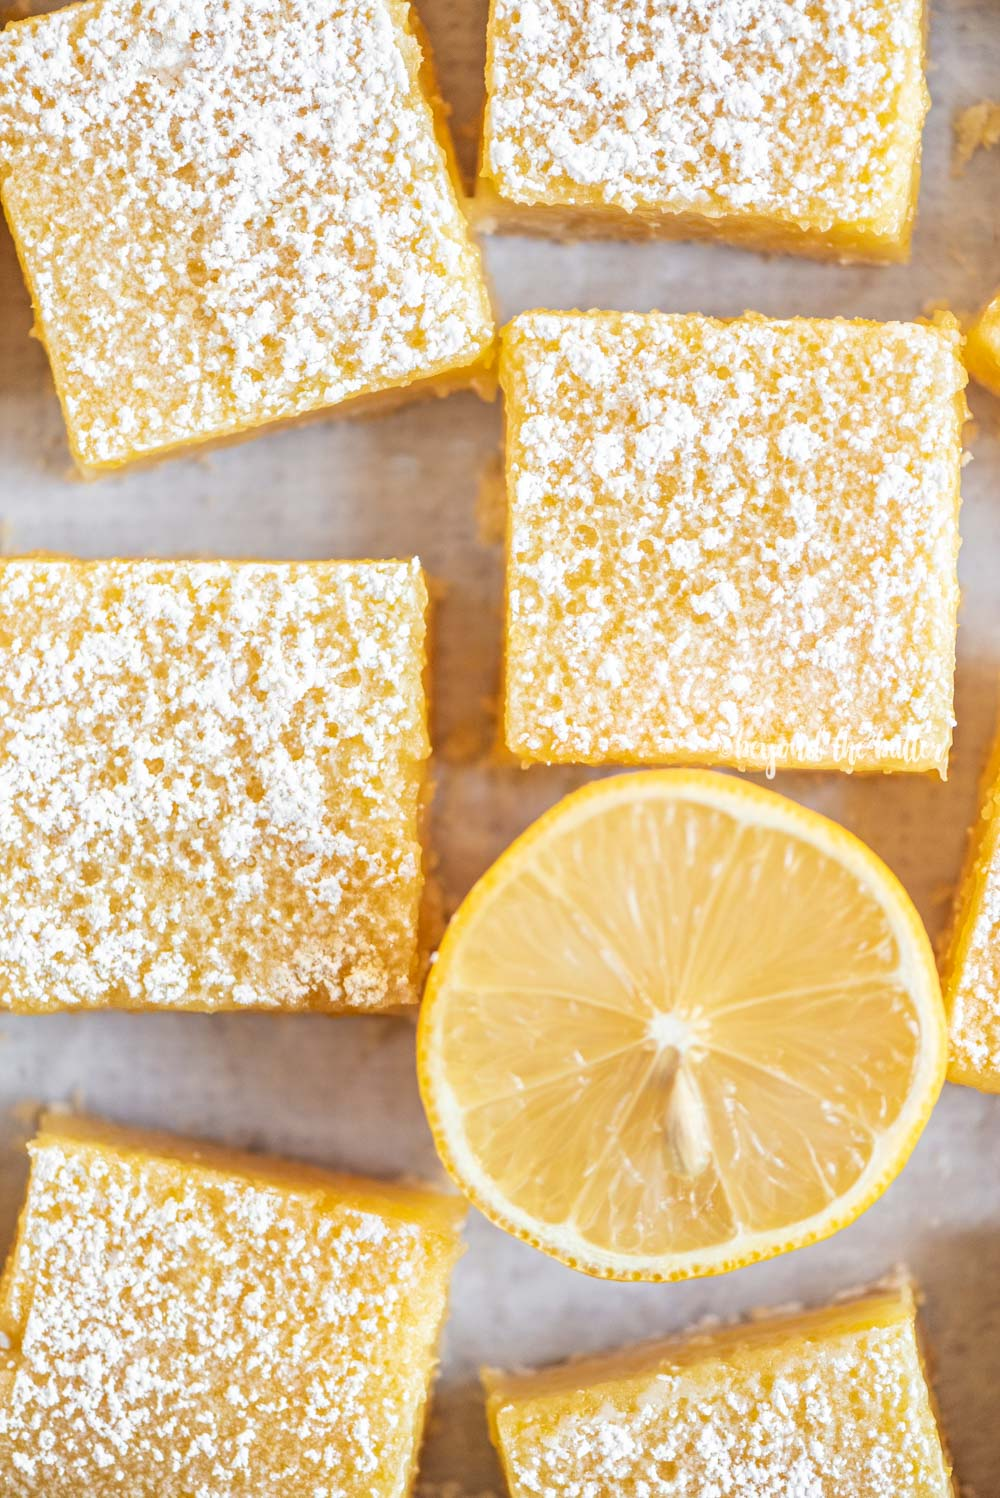 Overhead closeup image of super easy lemon bars with half cut lemon | All Images © Beyond the Butter, LLC